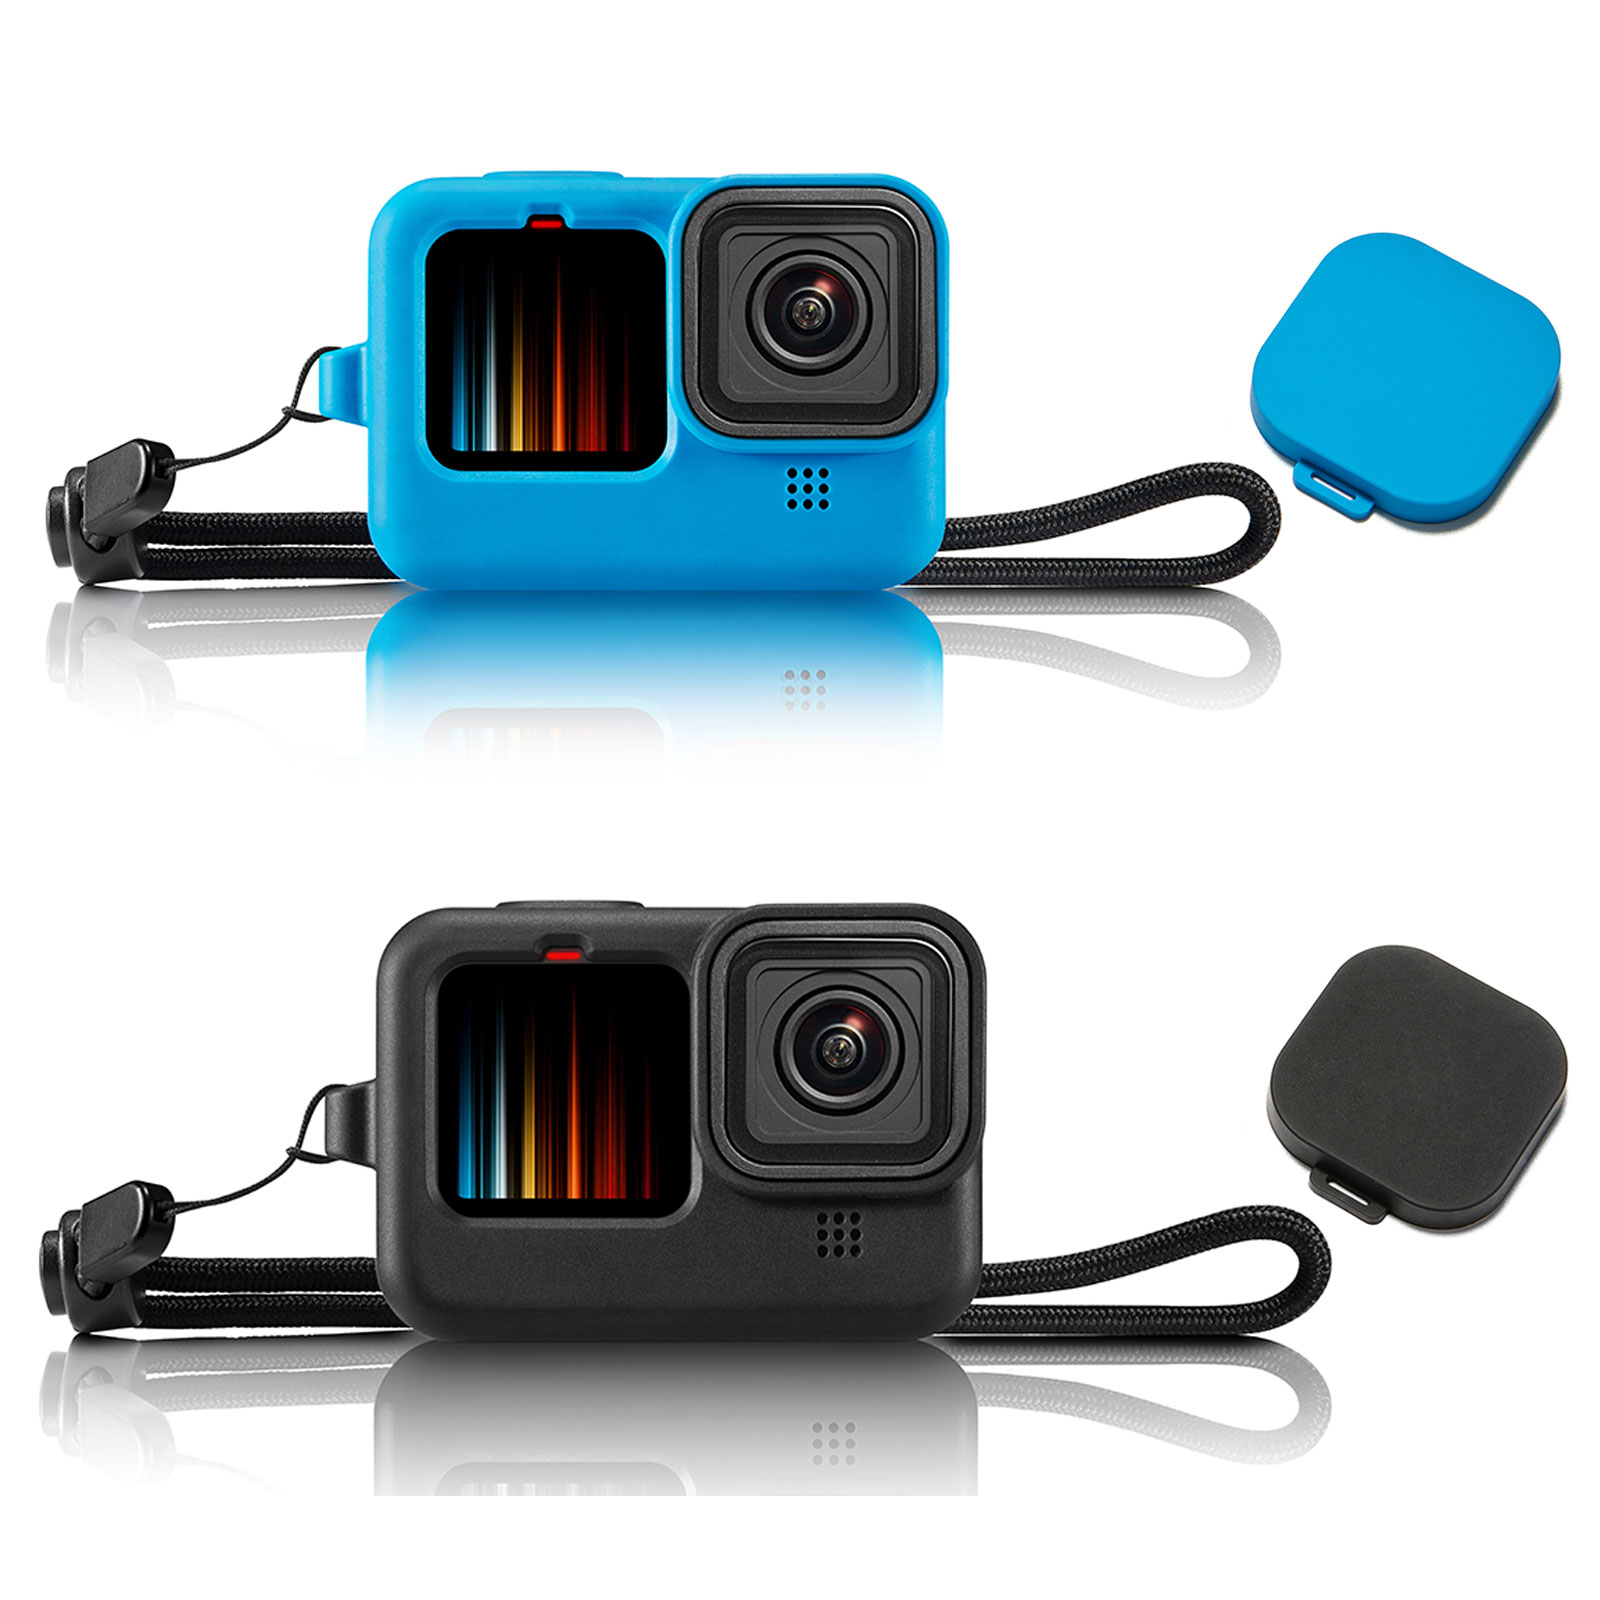 Lanyard Silicone Protective Cover for GoPro Hero 9 Housing with Lens Cap